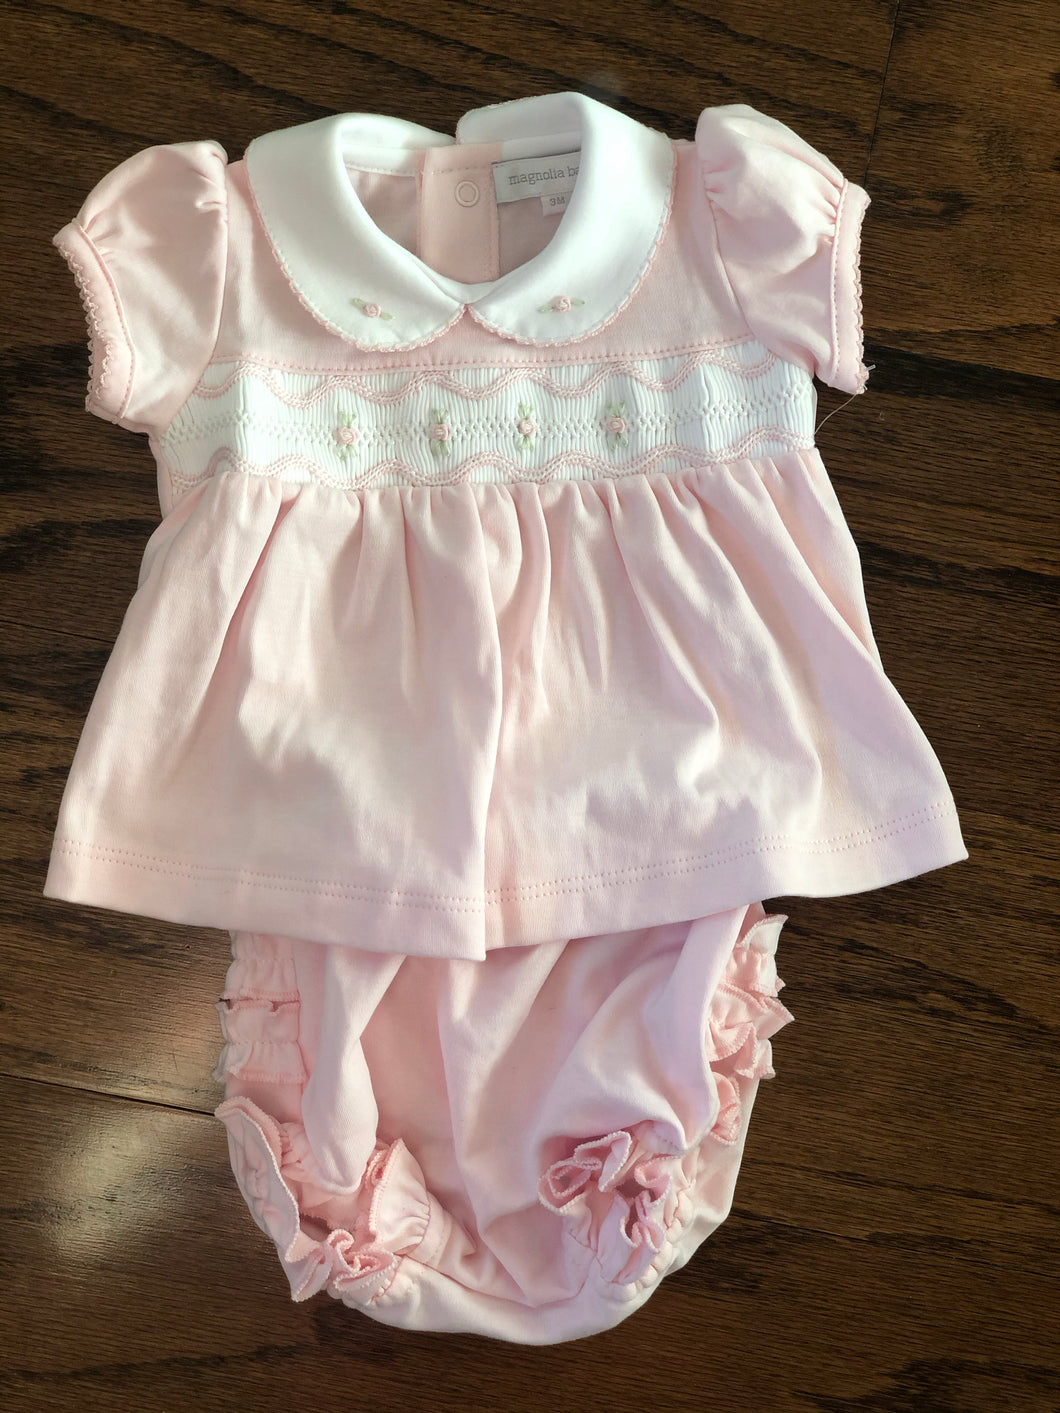 Magnolia Baby Cora and Cole Classics Smocked Collared Dress and Diaper Cover